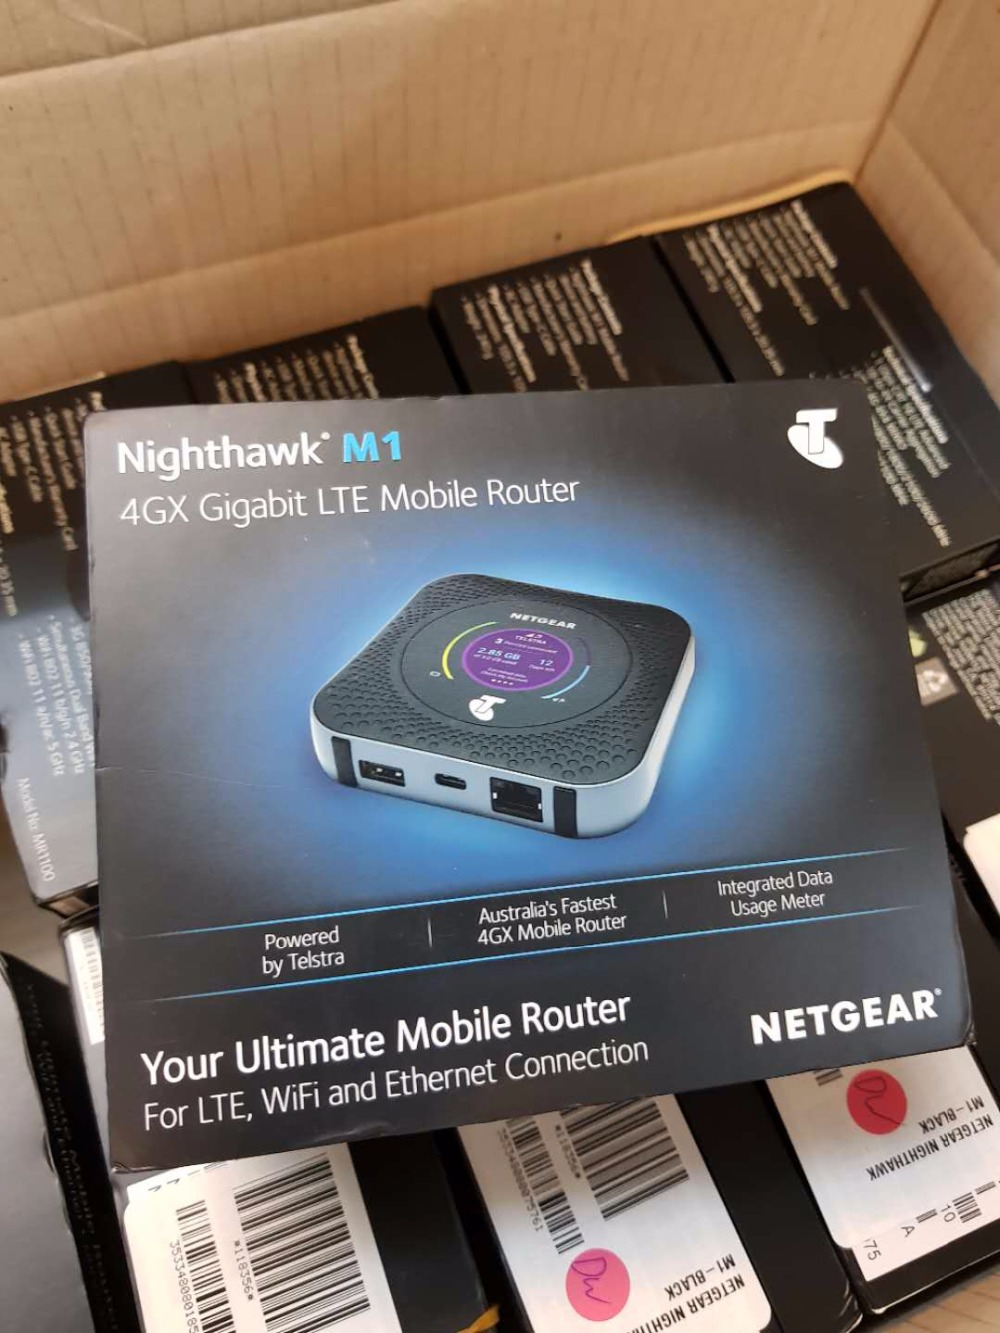 US $2500 0  Lot of 10pcs Netgear Nighthawk M1 MR1100 4GX Gigabit LTE Mobile  WiFi Router (Unlocked)-in Network Cards from Computer & Office on